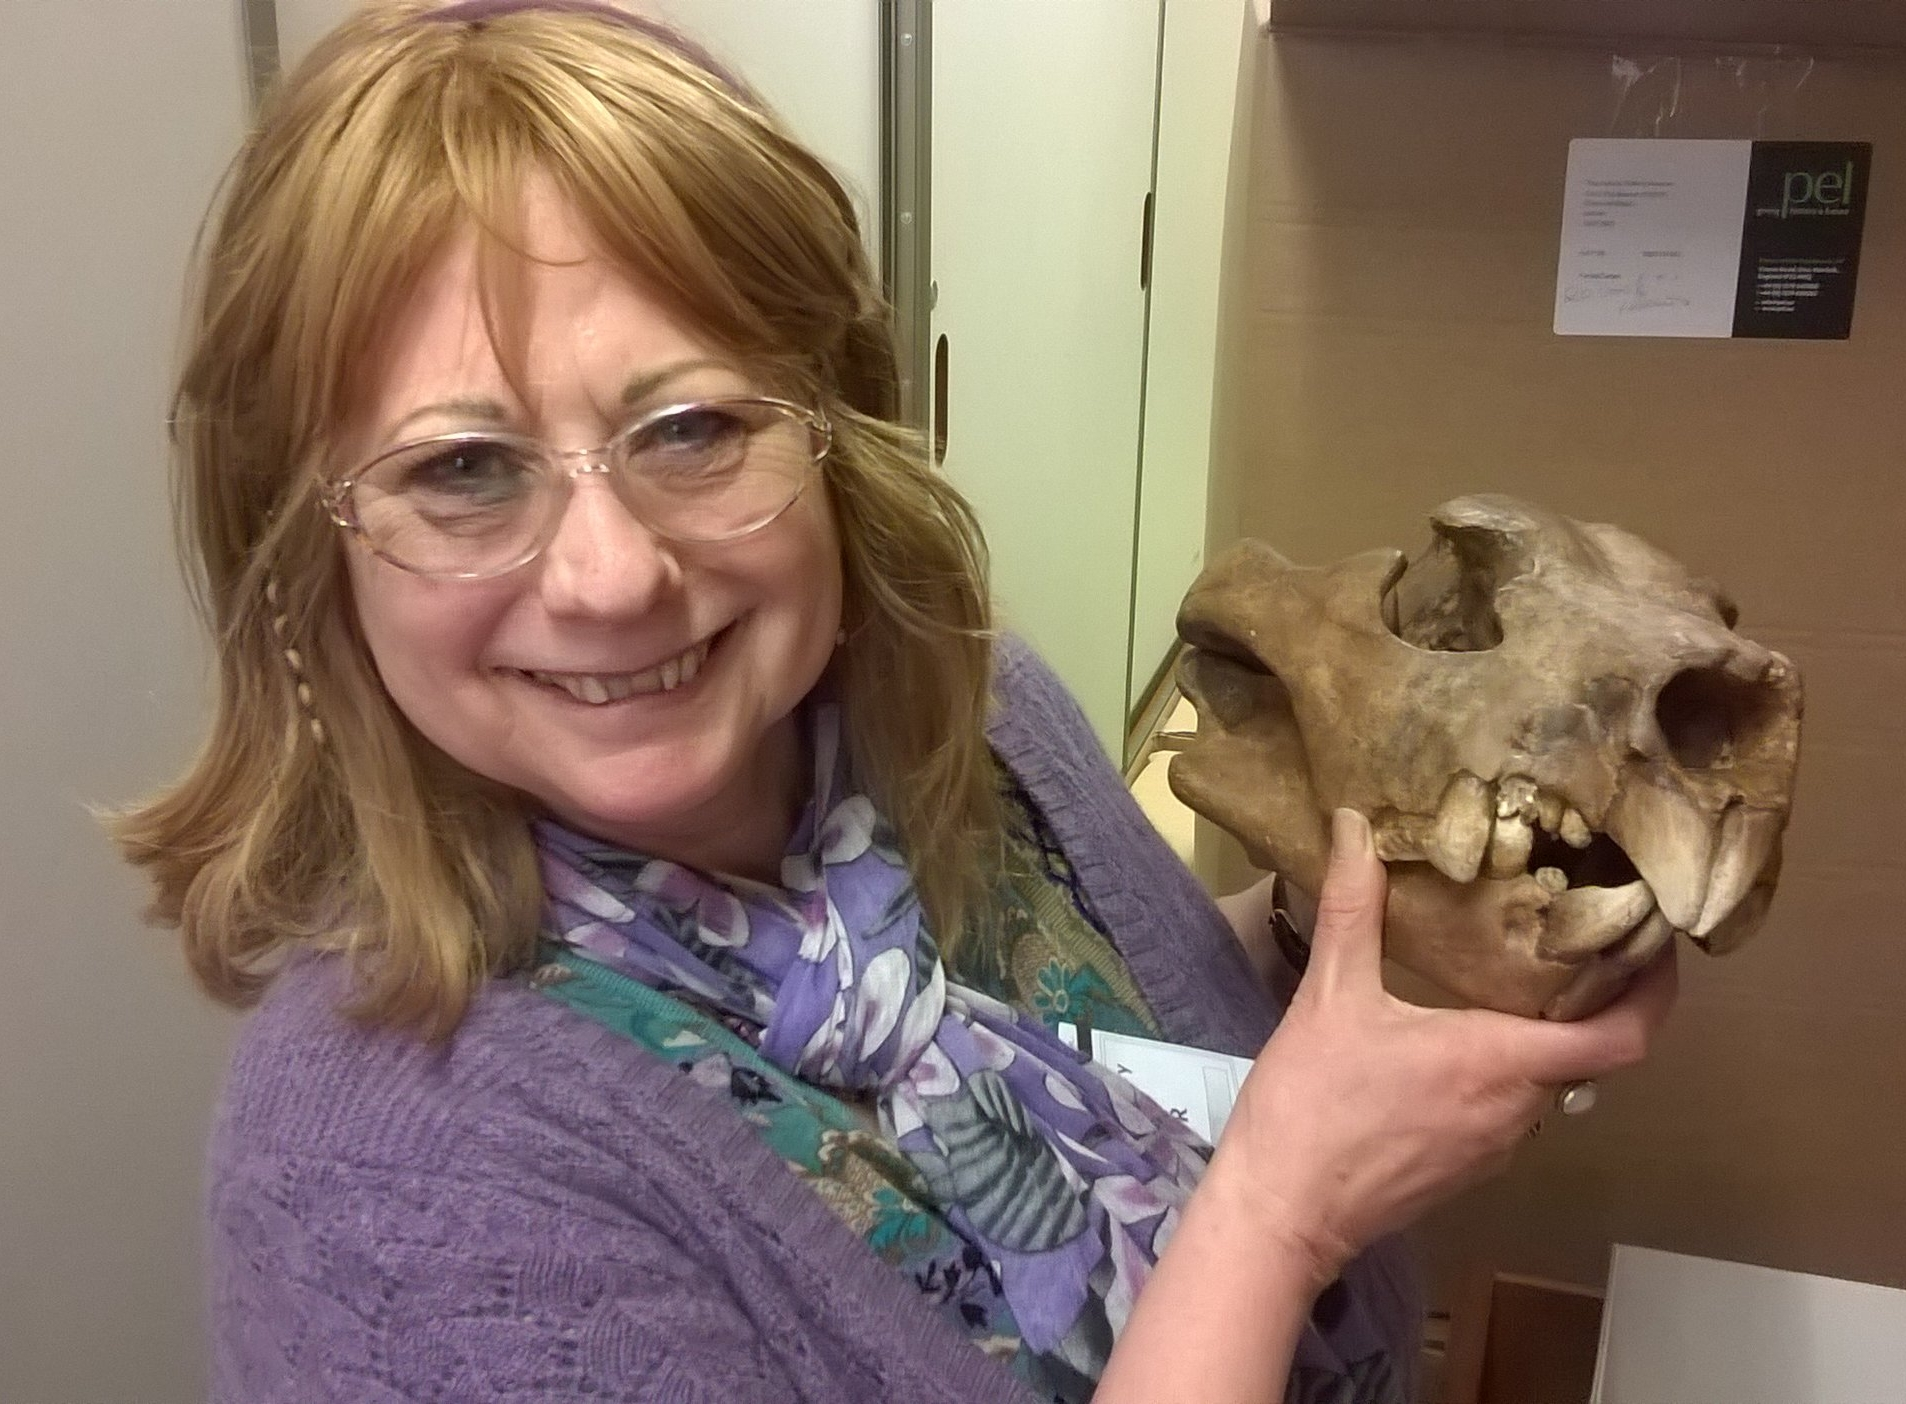 CMJ & cast of Thylacoleo NHM April 2015.jpg